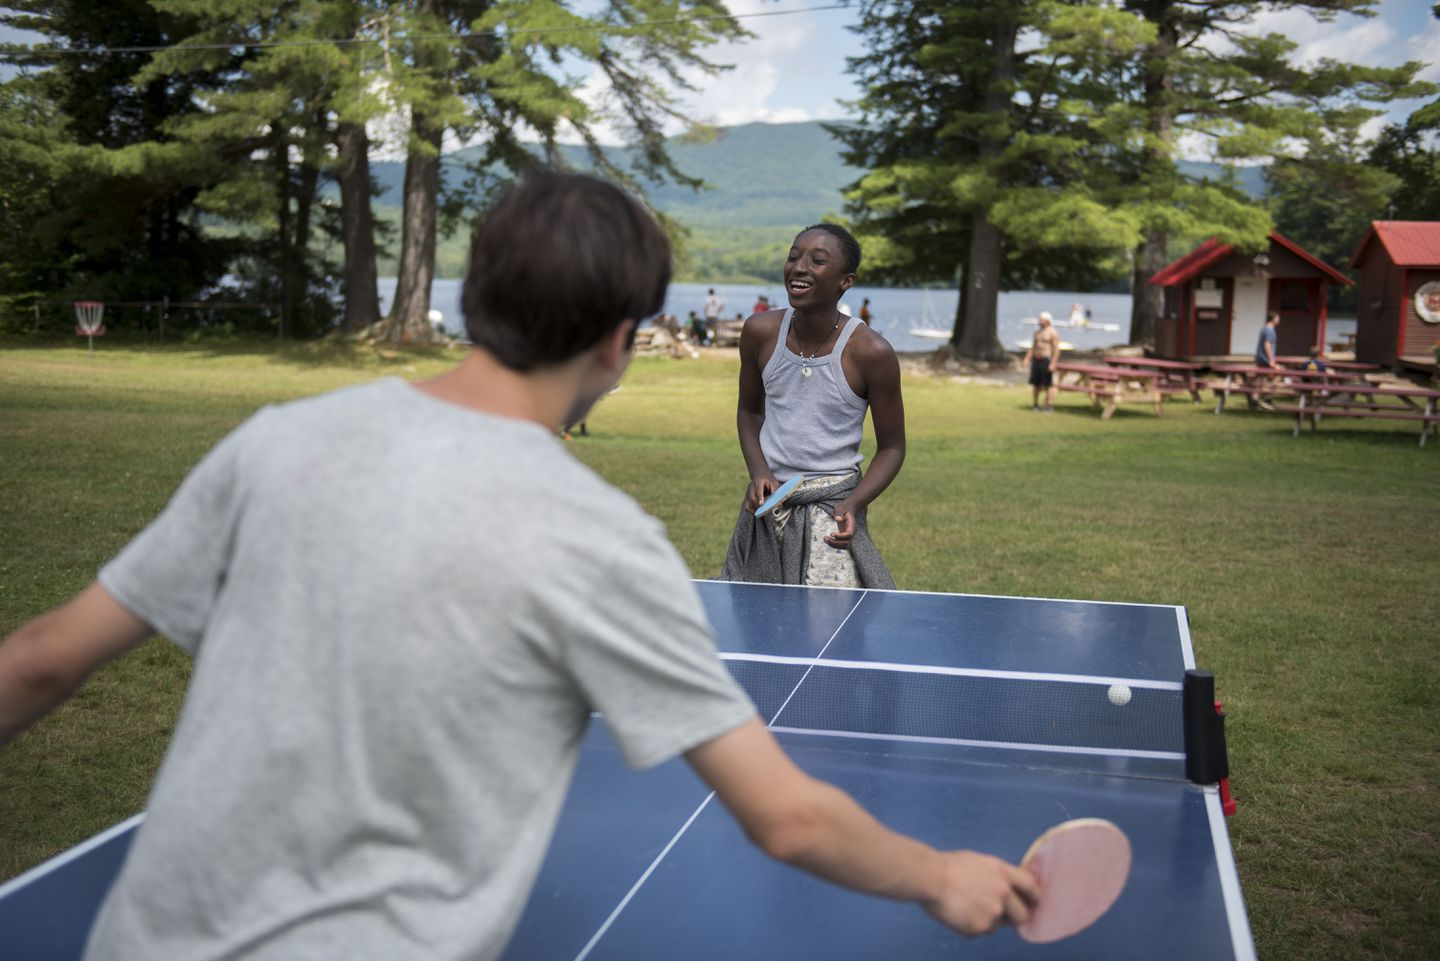 Long-time friends Jacob Smith, right, and David Falis played ping-pong during a sunny morning.